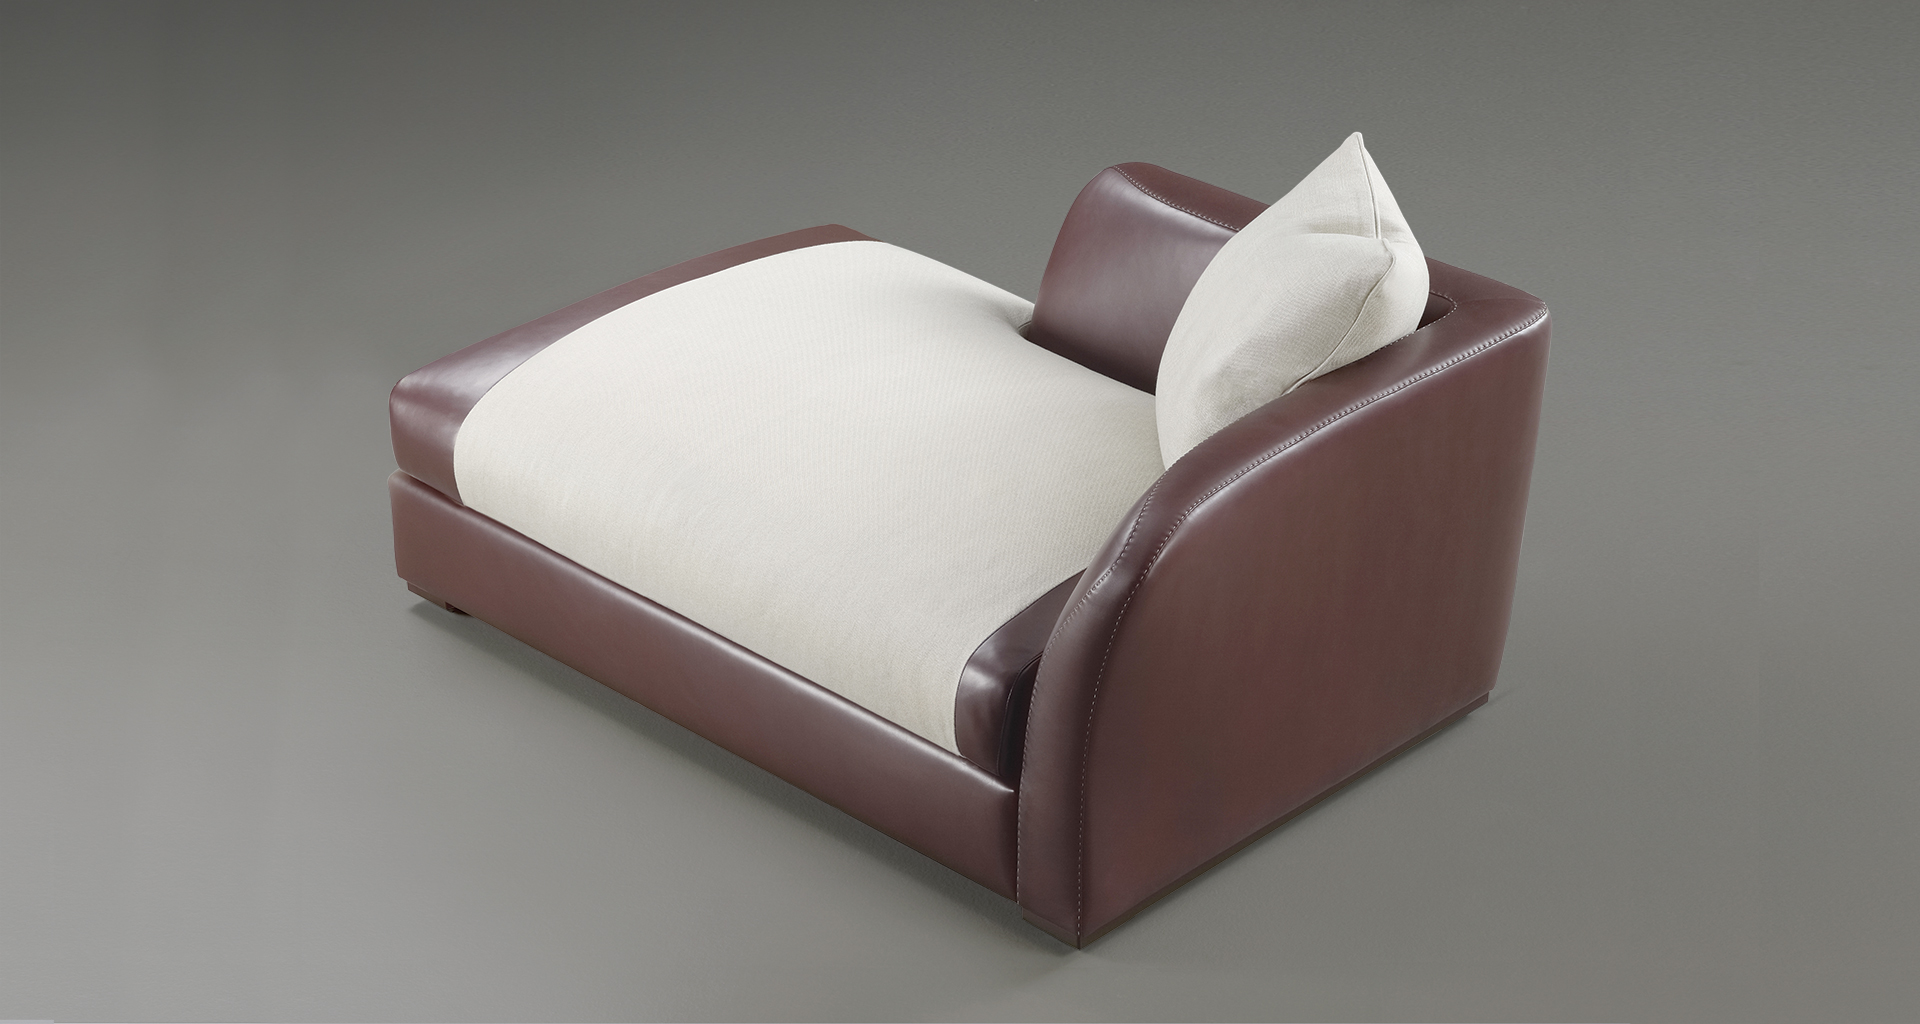 Shangri-la is a wooden chaise longue covered in fabric or leather, from Promemoria's catalogue | Promemoria